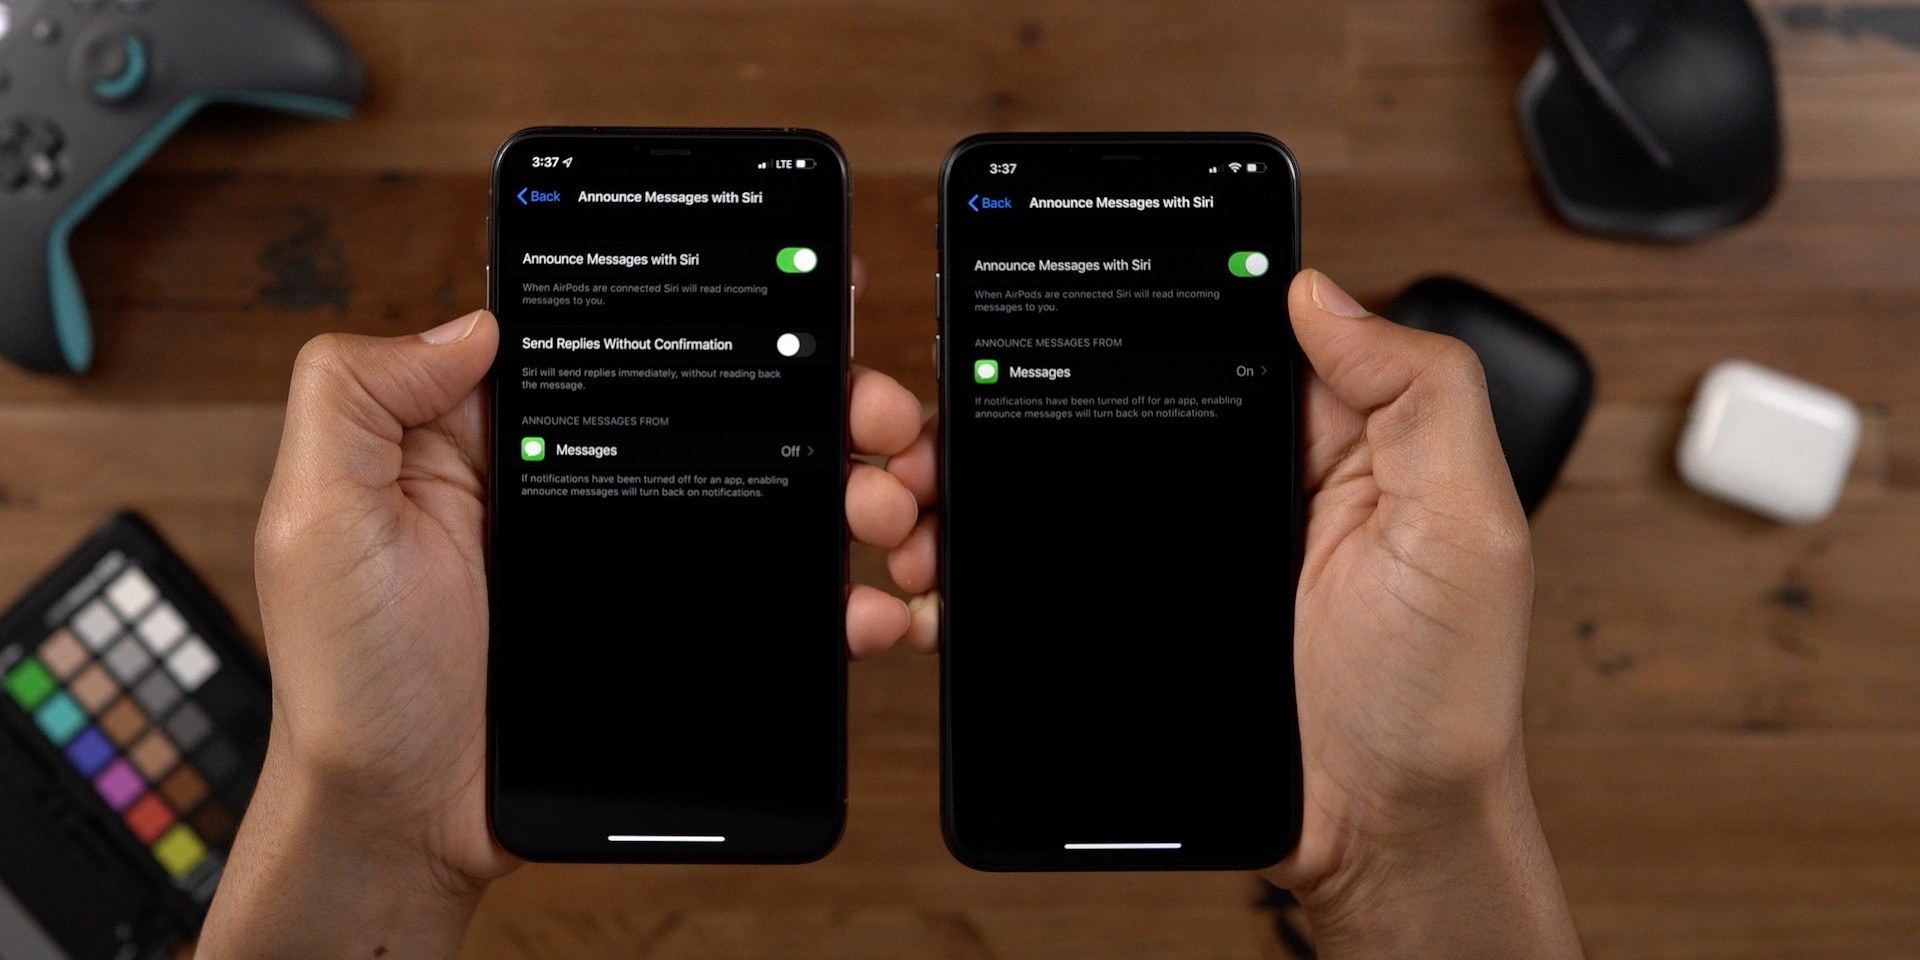 Announce Messages with Siri iOS 13 beta 2